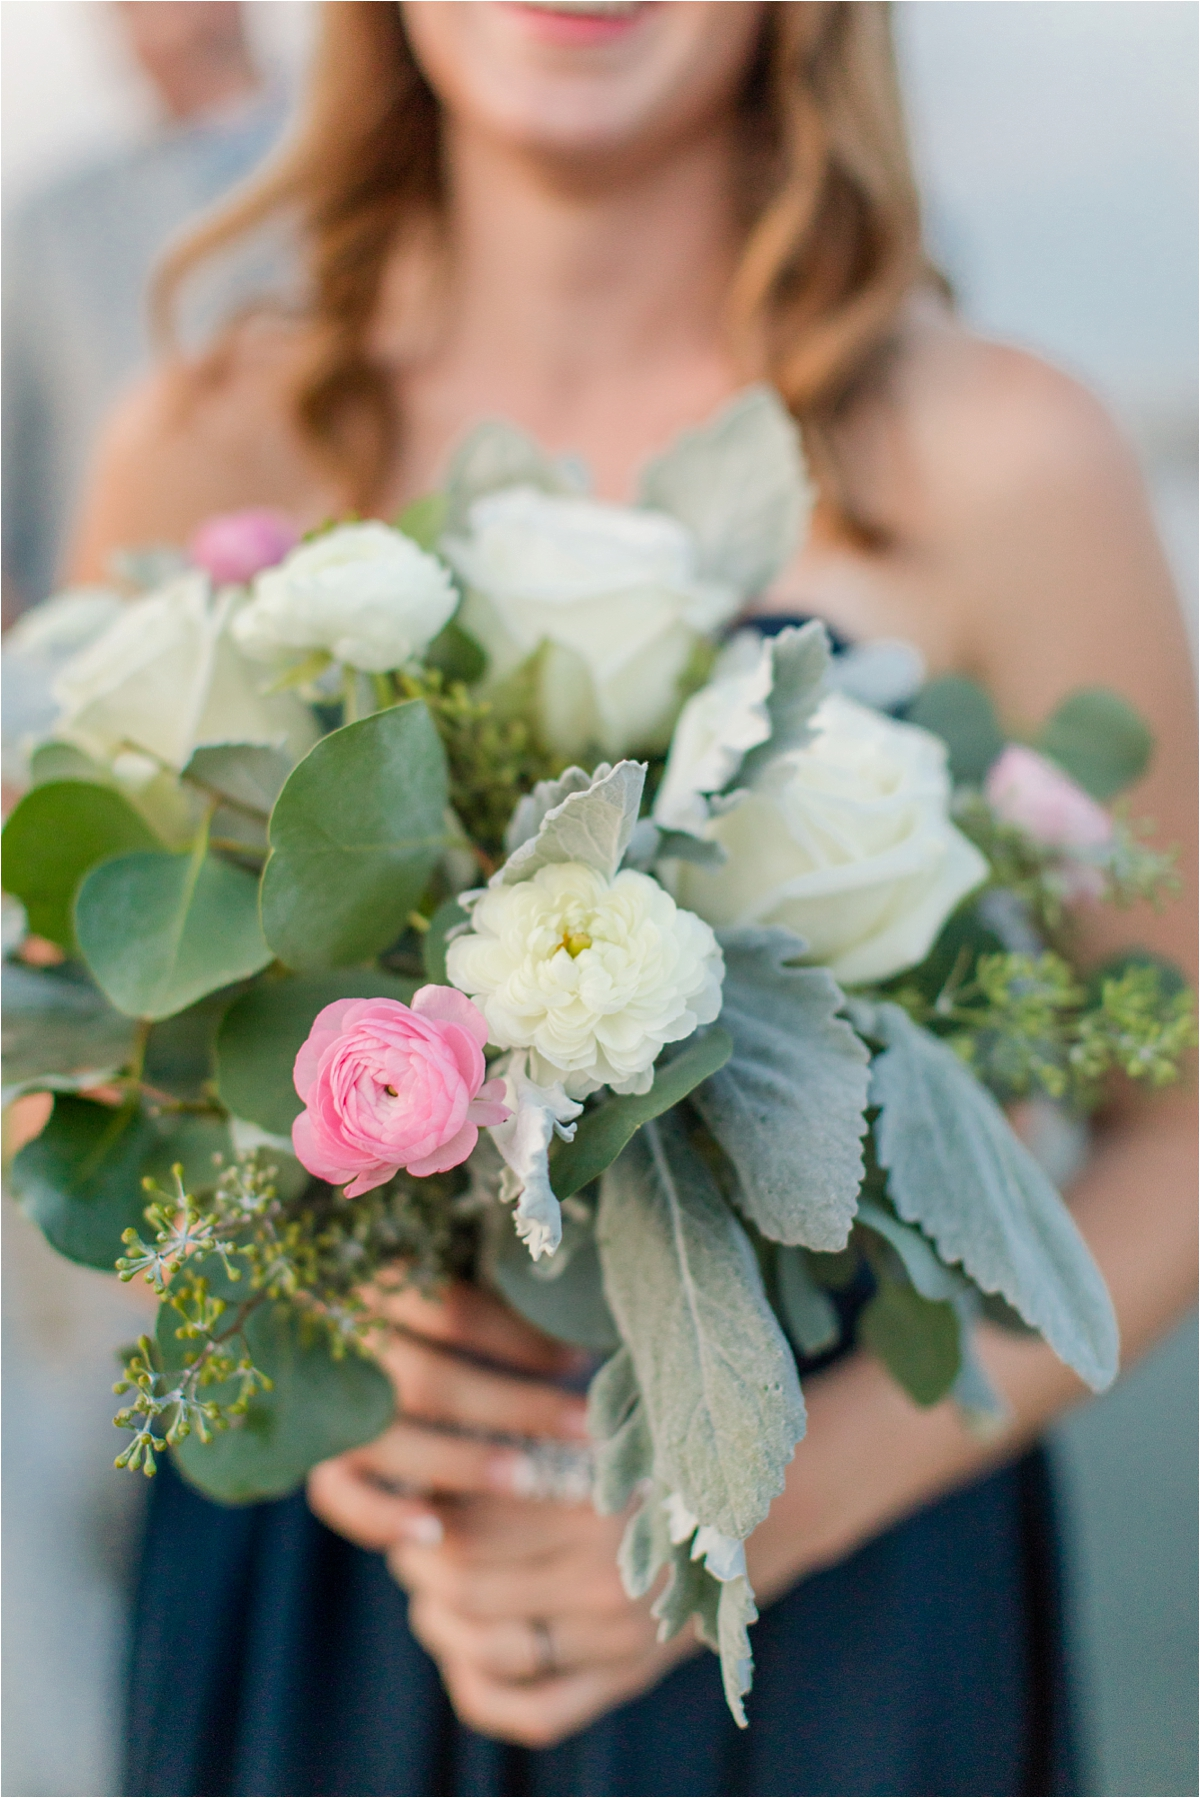 bridal-bouquet-blush-navy-bridesmaid-wedding-alabama-wedding-photographer